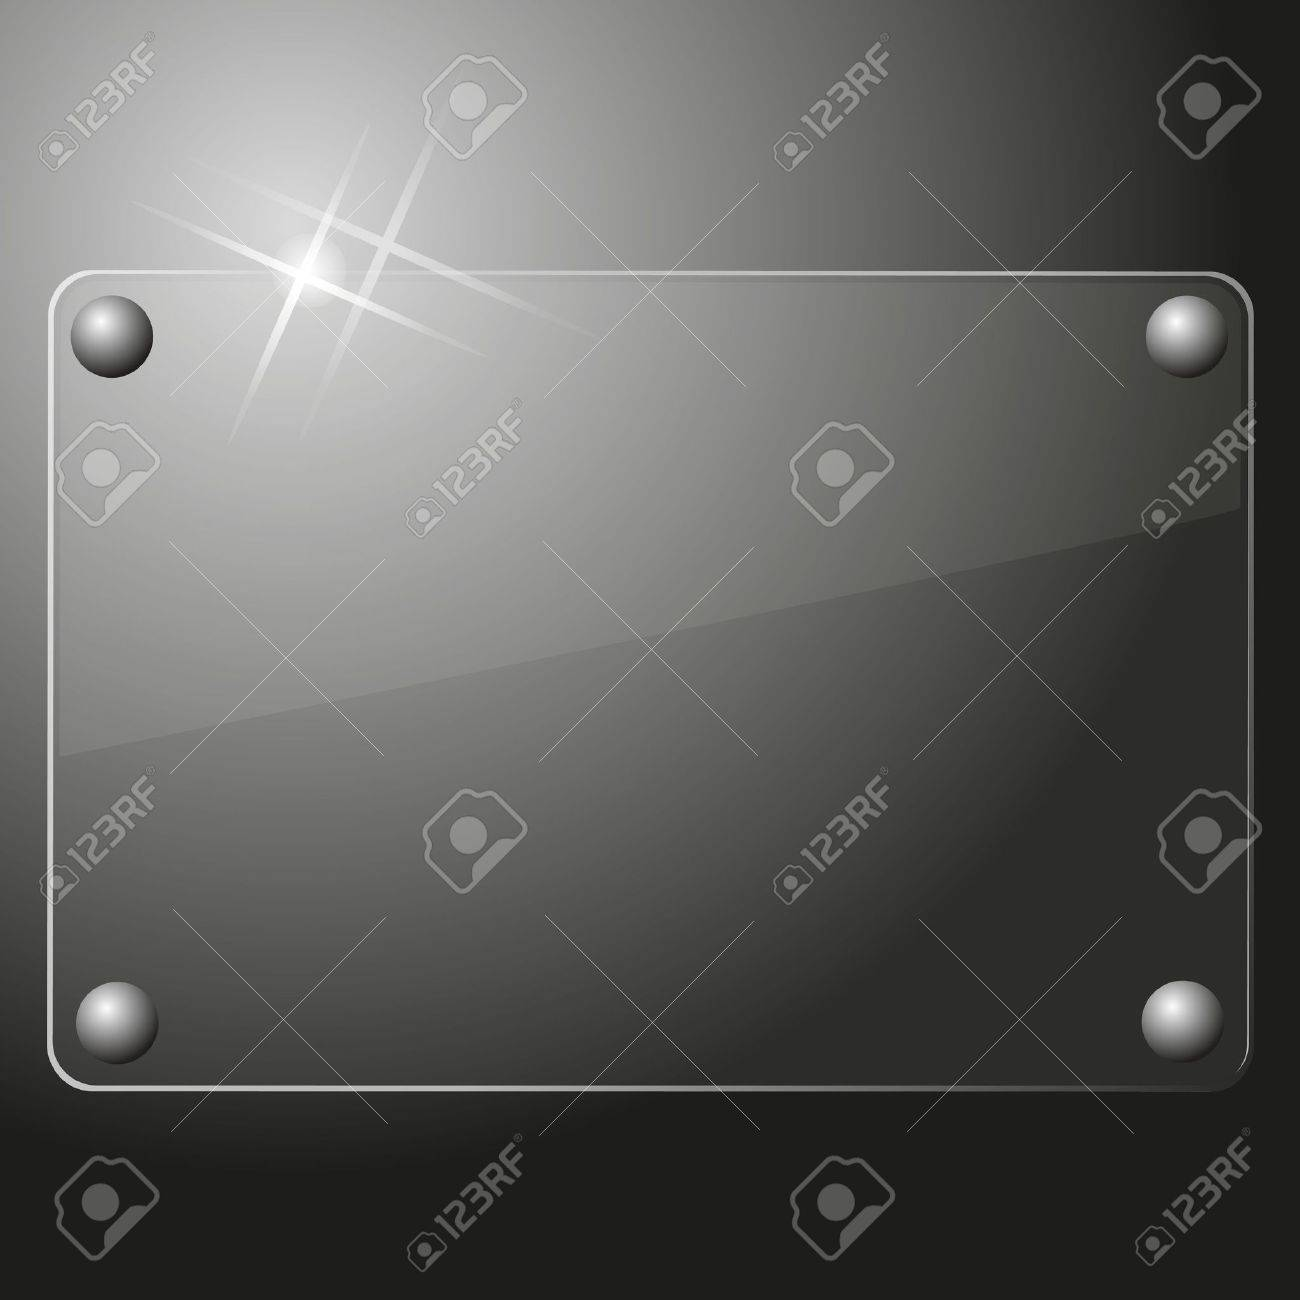 Glass plate background Stock Vector - 15820581